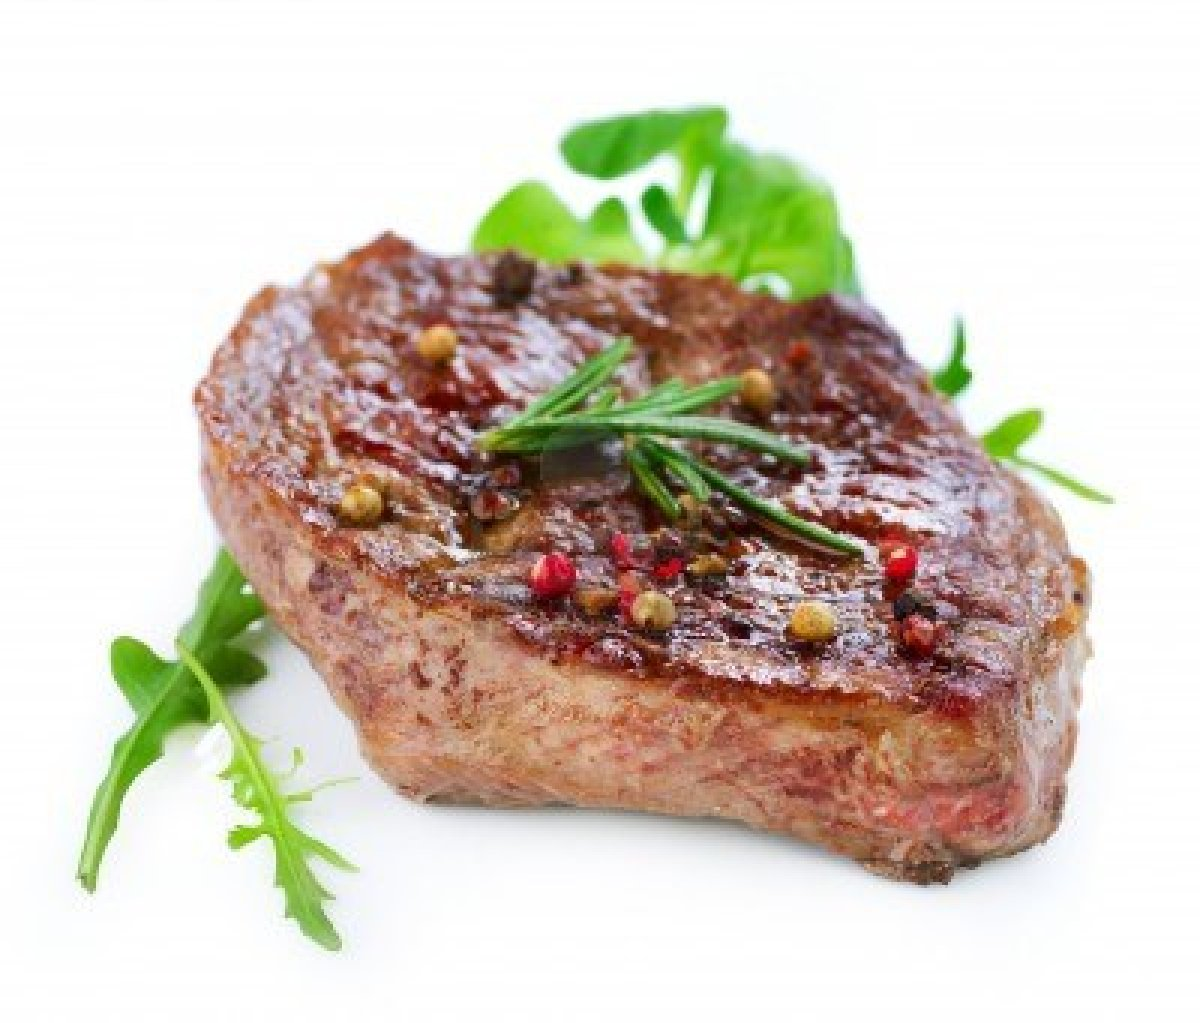 Creatine steak